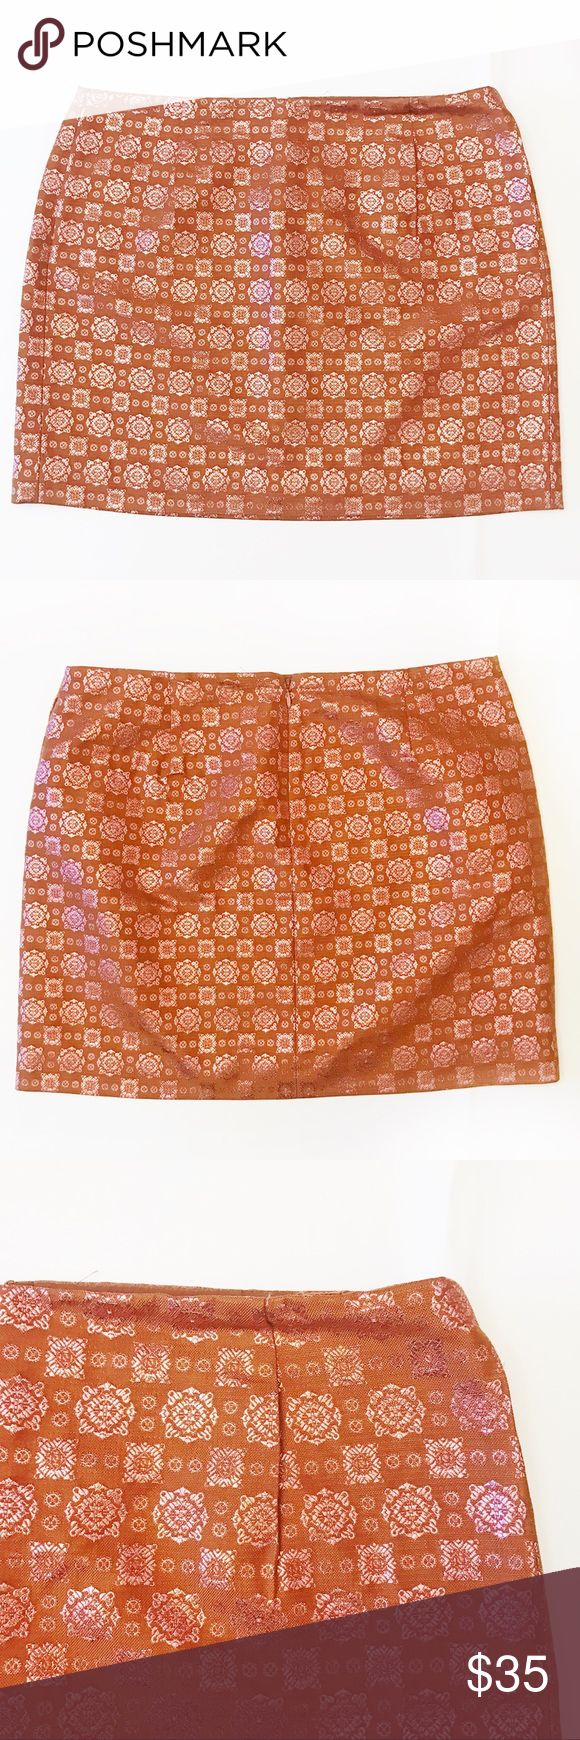 "J.CREW Brown Miniskirt w/Pink Metallic Embroidery DESCRIPTIONS: J. CREW Collection Brown Miniskirt w/ Pink Metallic Print, Size 6 - Brown miniskirt w/ Pink metallic embroidery print - FrontPin-tuck pleat detail - Back zipper with hook-and-bar closure - Lined   MEASUREMENTS (approx.):  15.5"" Length; 15.5"" Waist.   MATERIALS:  SHELL: 52% Silk; 27% Cotton; 21% Metallic  LINING: 100% Acetate  Dry clean  CONDITIONS: Great condition; Shows minimal signs of wear. J. Crew Skirts Mini"